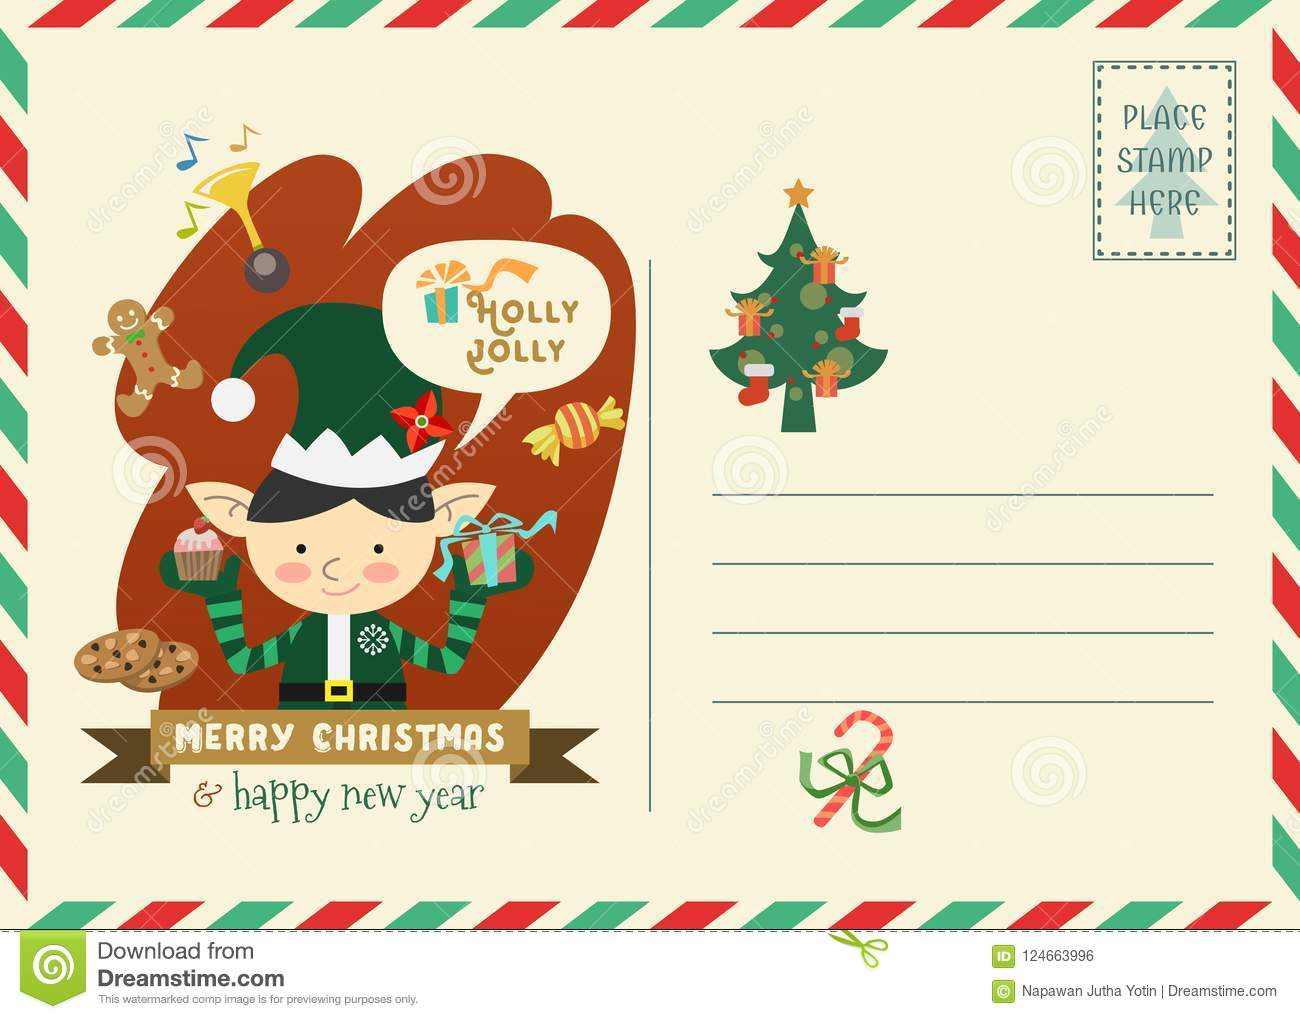 merry christmas and happy new year invitation with elf character christmas postage style greeting card